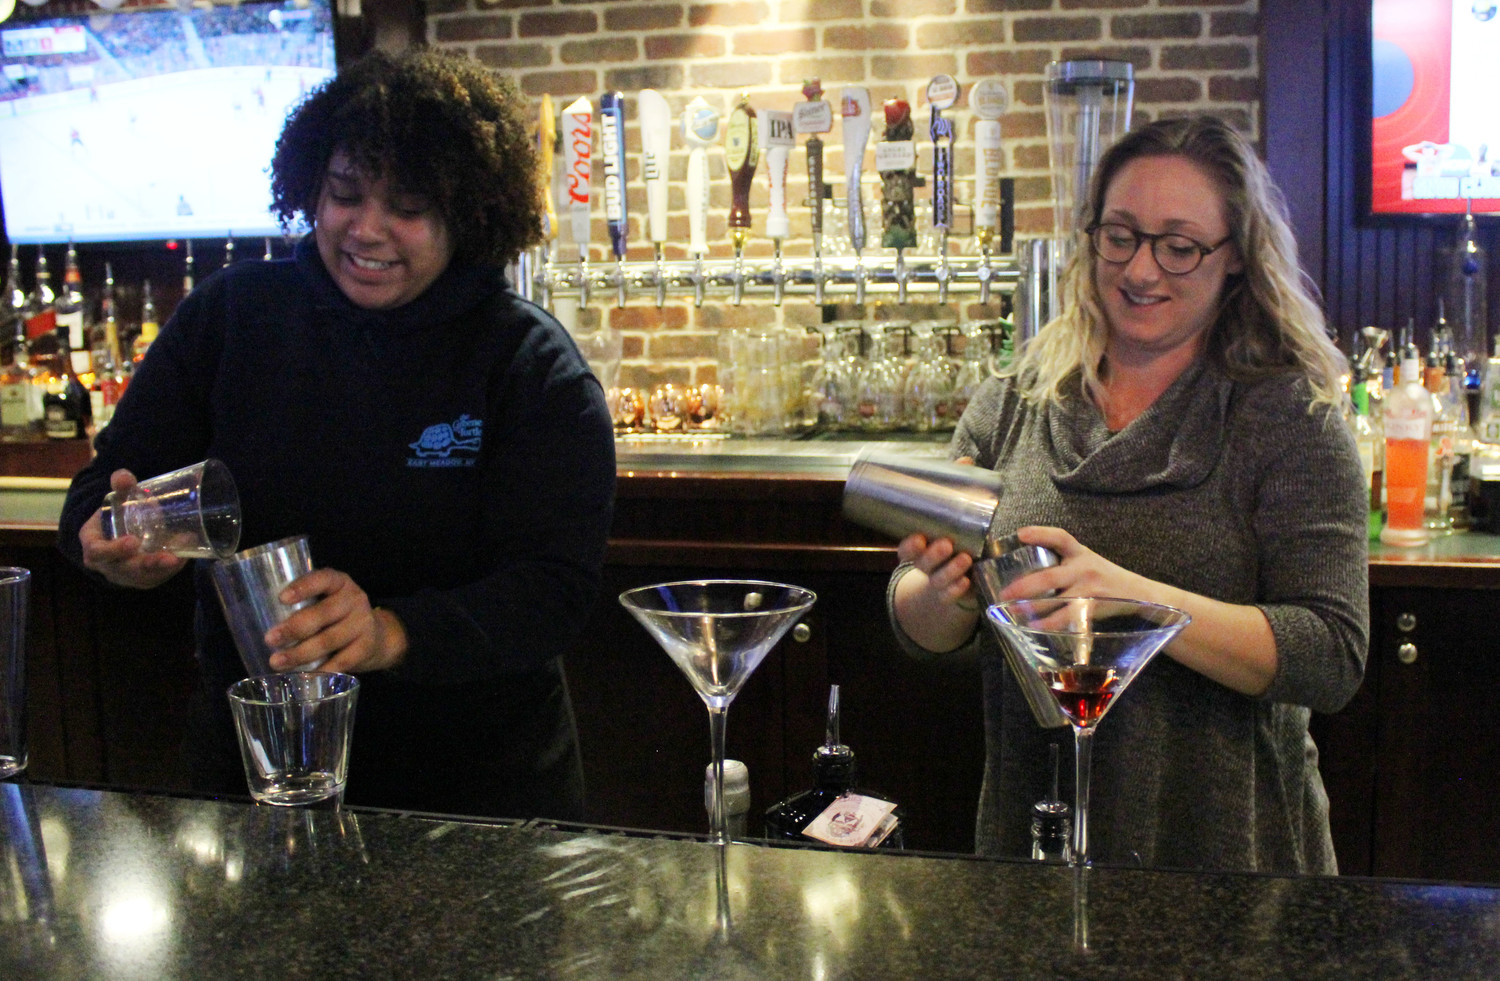 Baumann, left, and De Los Santos will be moving on to the national competition on April 13, where they will compete for a chance to have their drink recipe on Greene Turtle menus across the country.